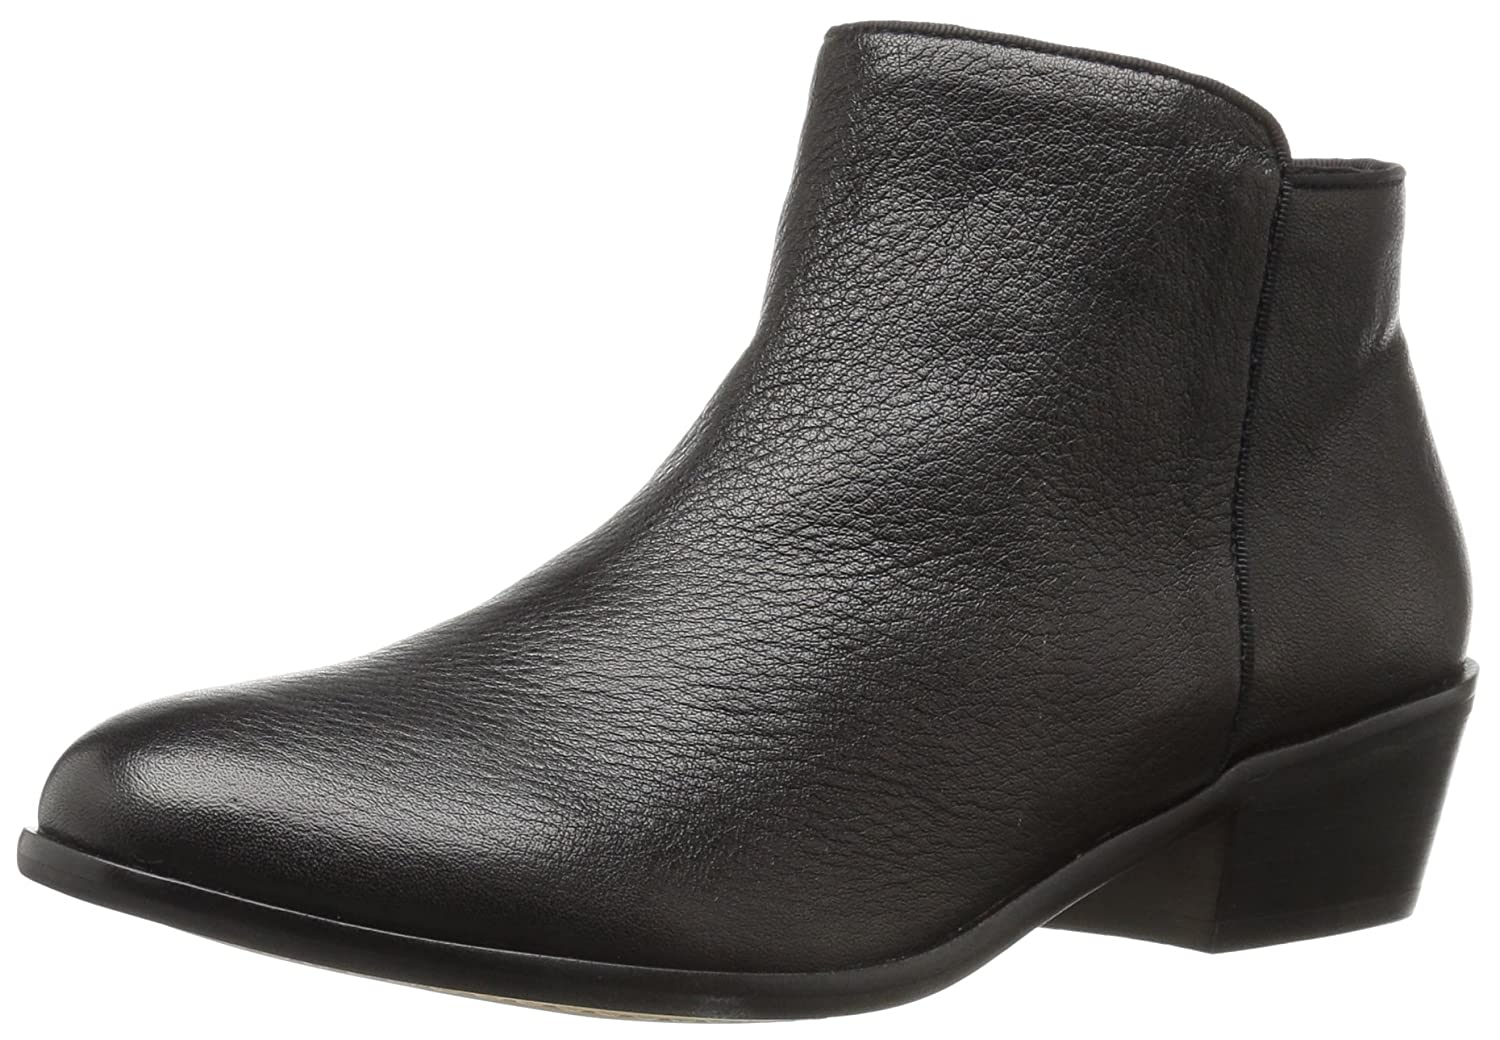 206 Collective Women's Magnolia B01MTFYDWD Low Heel Ankle Bootie B01MTFYDWD Magnolia 11 B(M) US|Black Leather 93ebf8